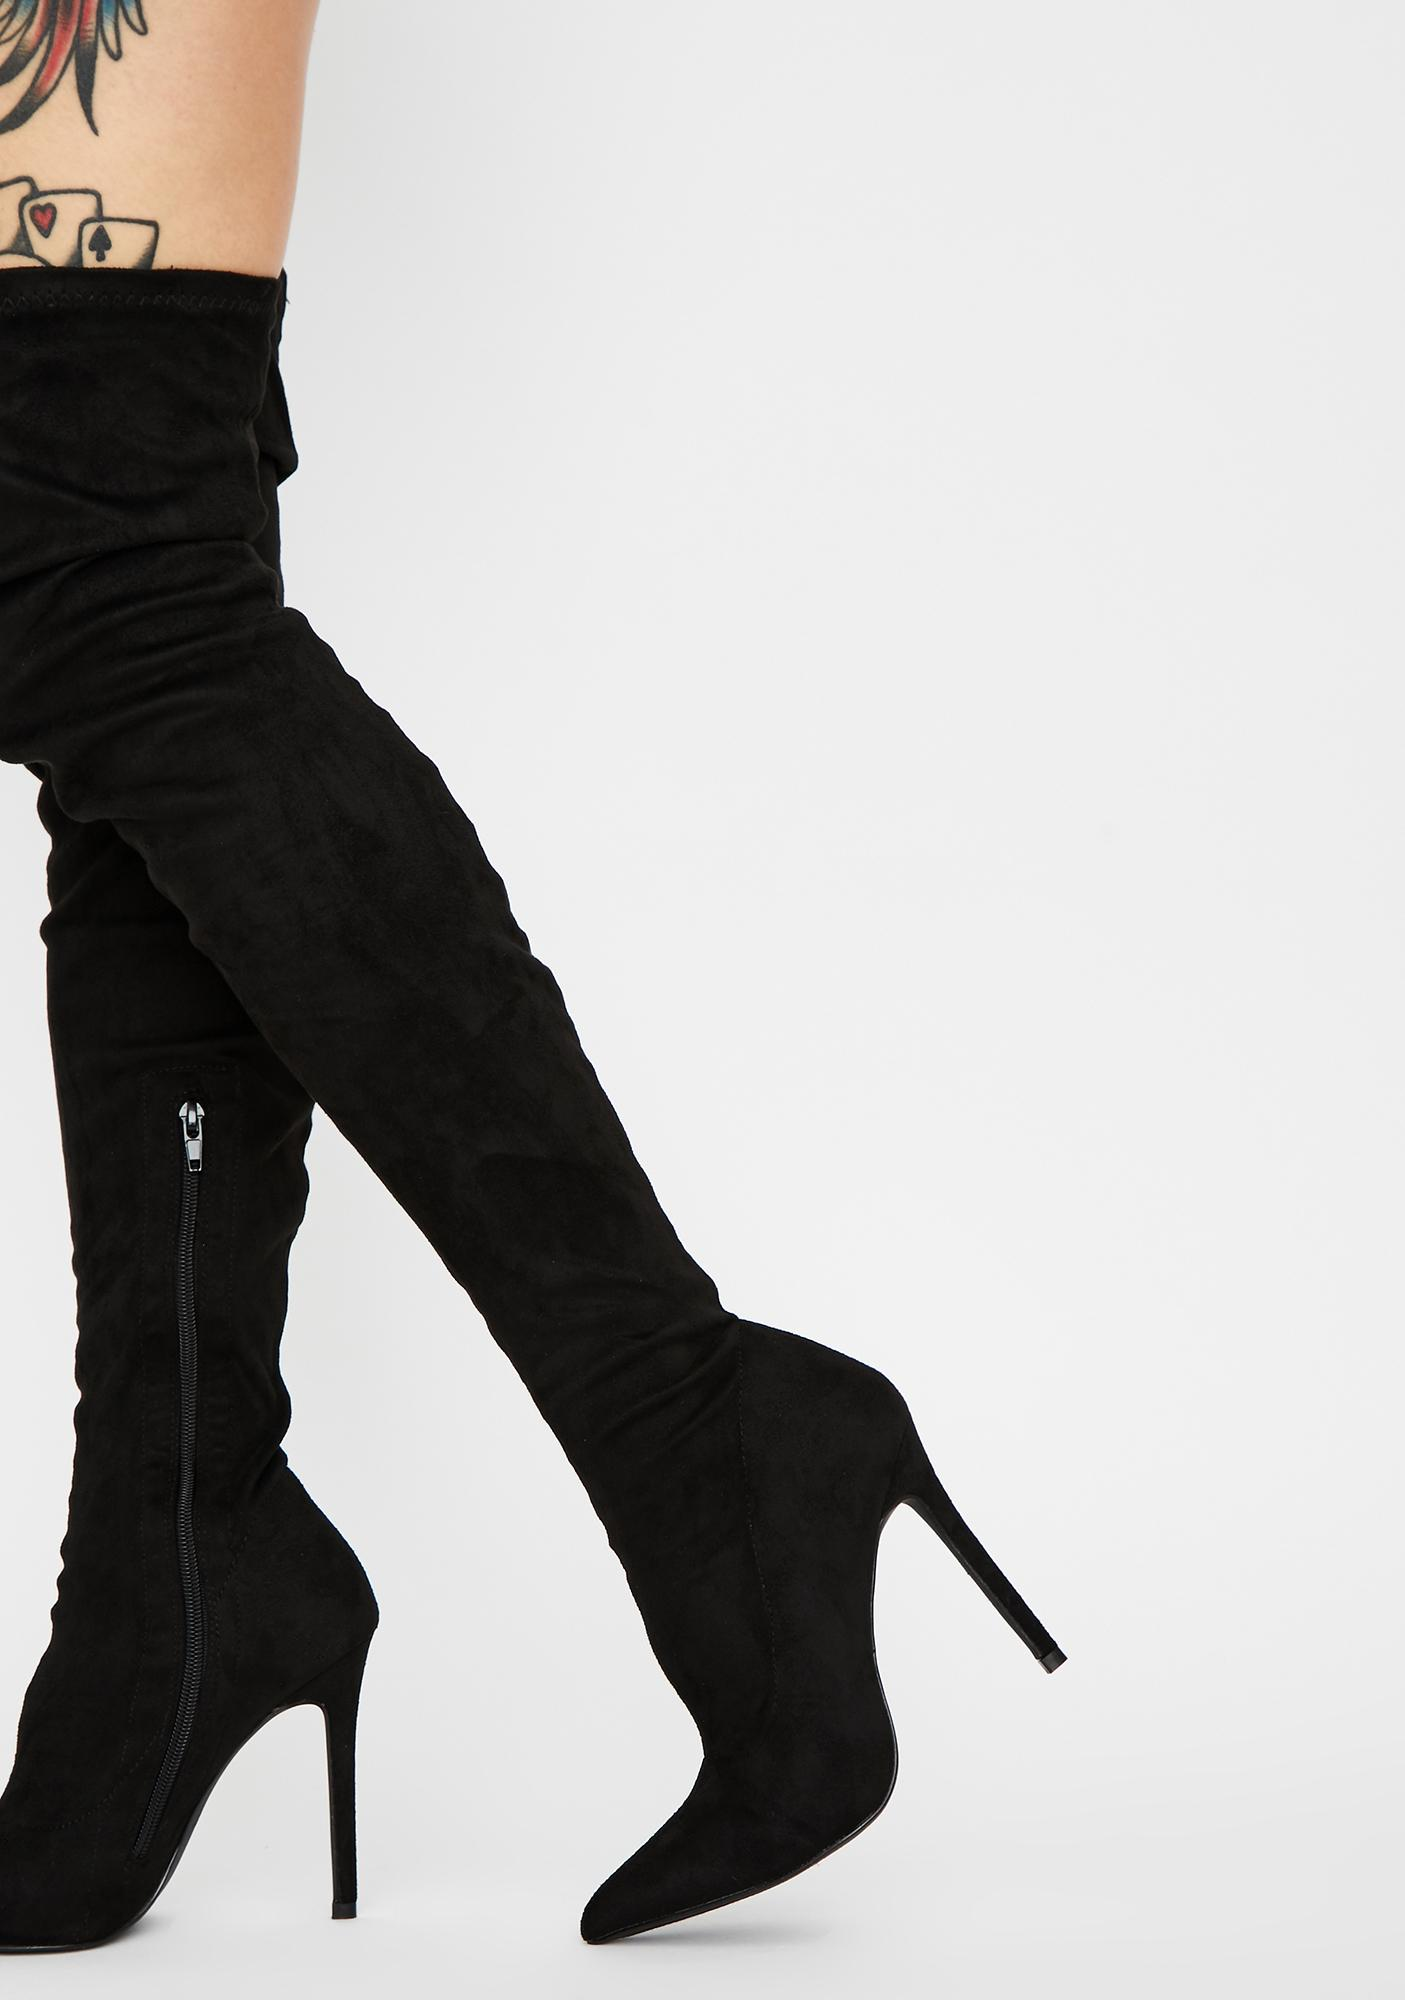 Luna Draw The Line Thigh High Boots